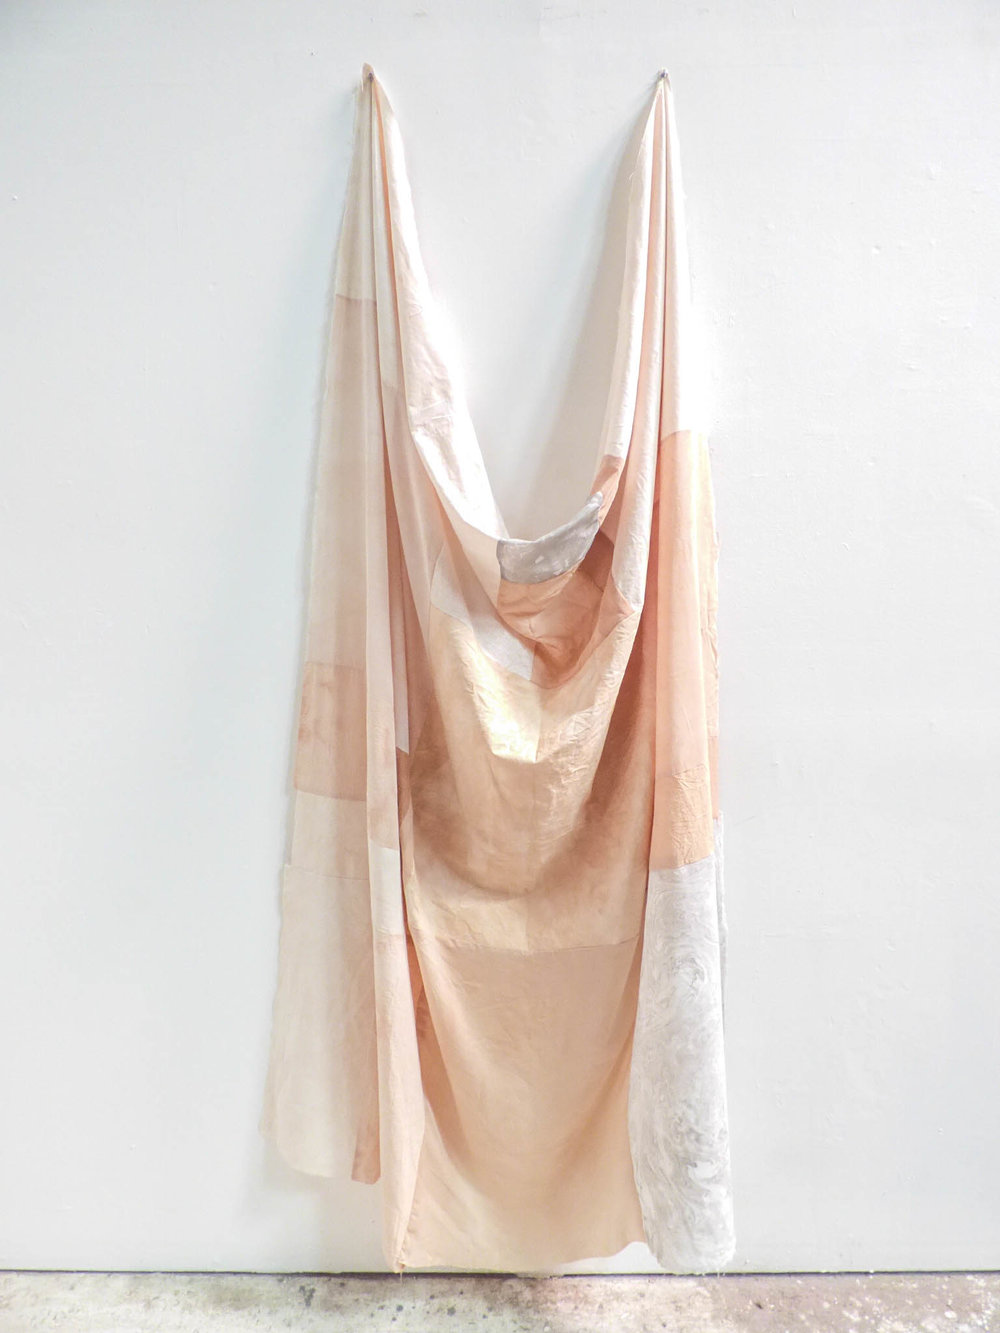 Avocado Marbled , 2017  Avocado dyed and marbled fabric, thread